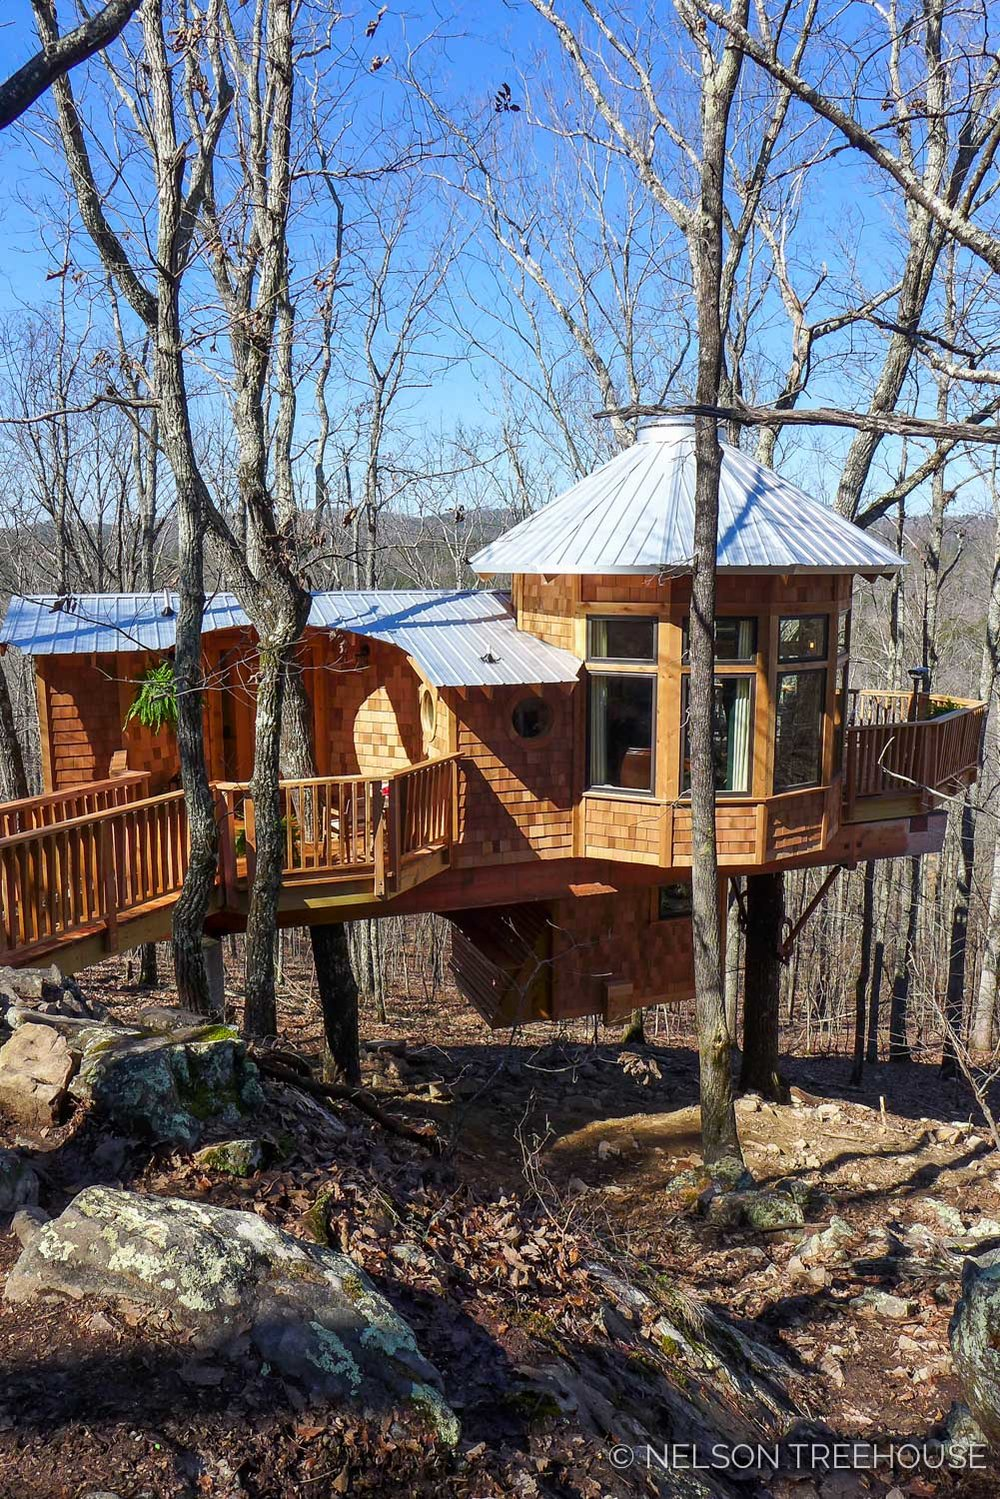 Super Spy Treehouse - Nelson Treehouse 2018